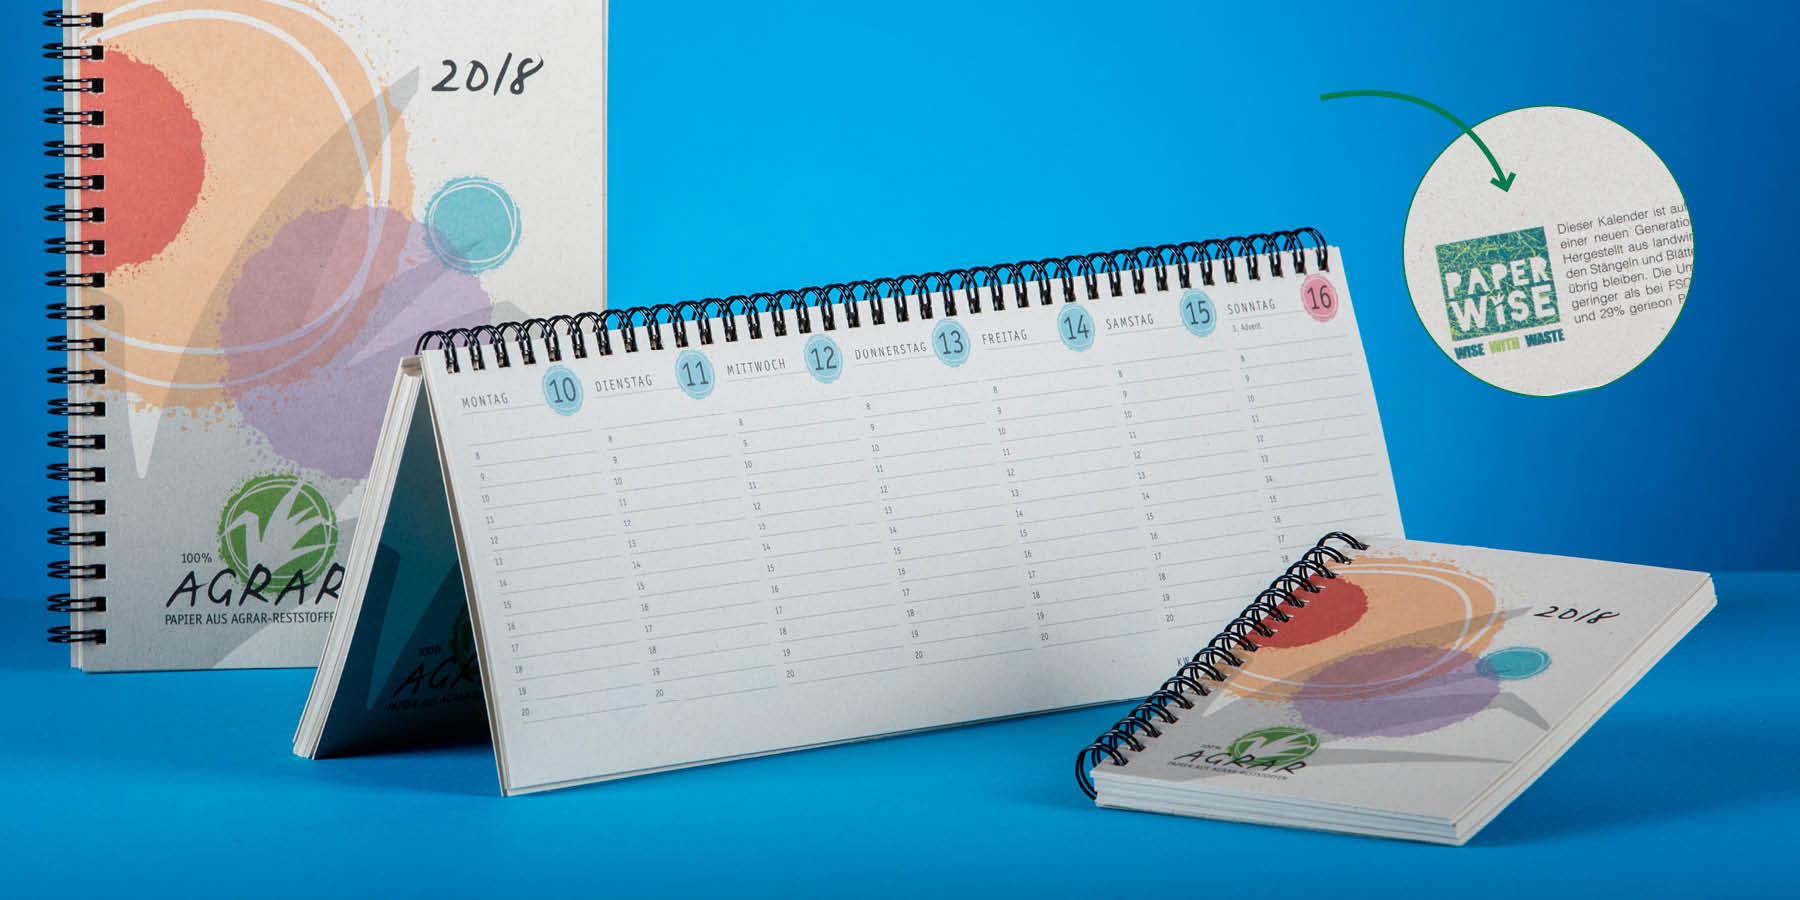 paperwise-eco-friendly-natural-paper-stationery-writing-calender-notebook-planner-office-printing-zettler-kalender